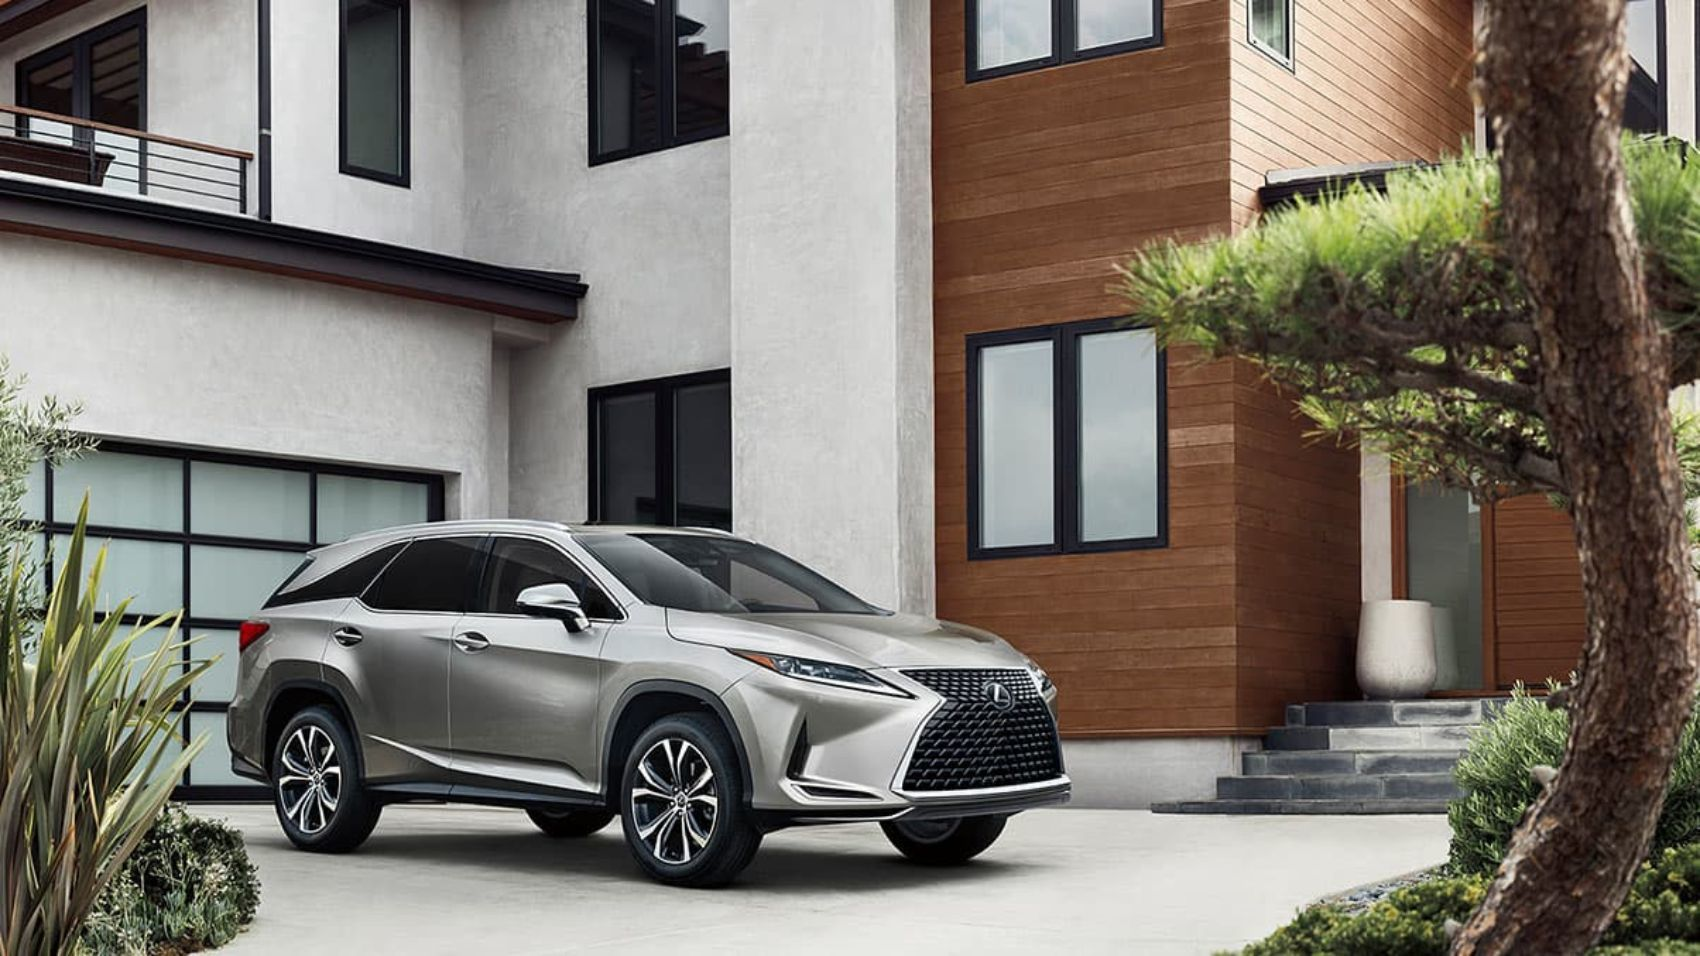 2020 Lexus RX 350L Review: A Comfortable Family Hauler